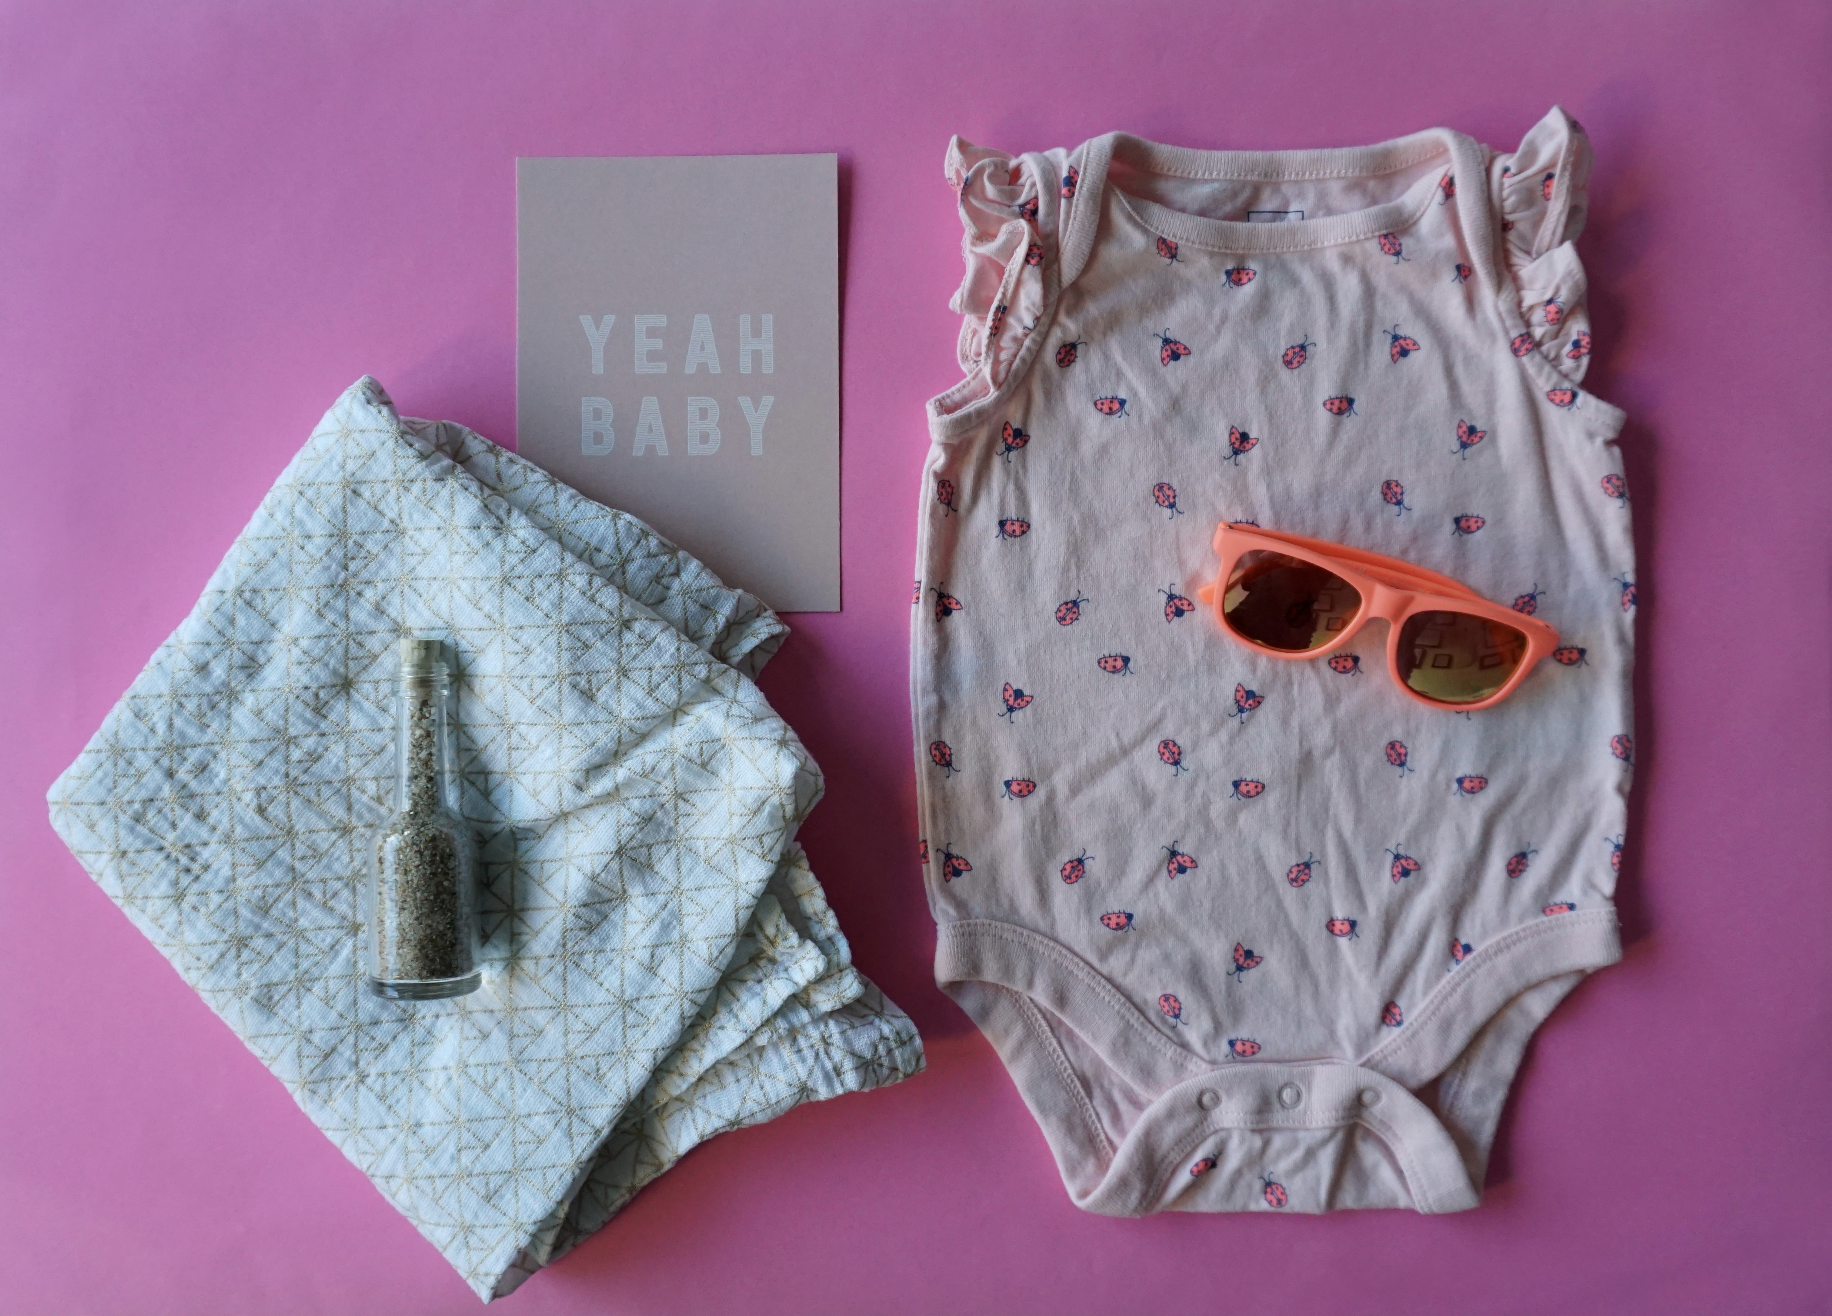 maybeyoulike_baby_Summer_Outfit_5